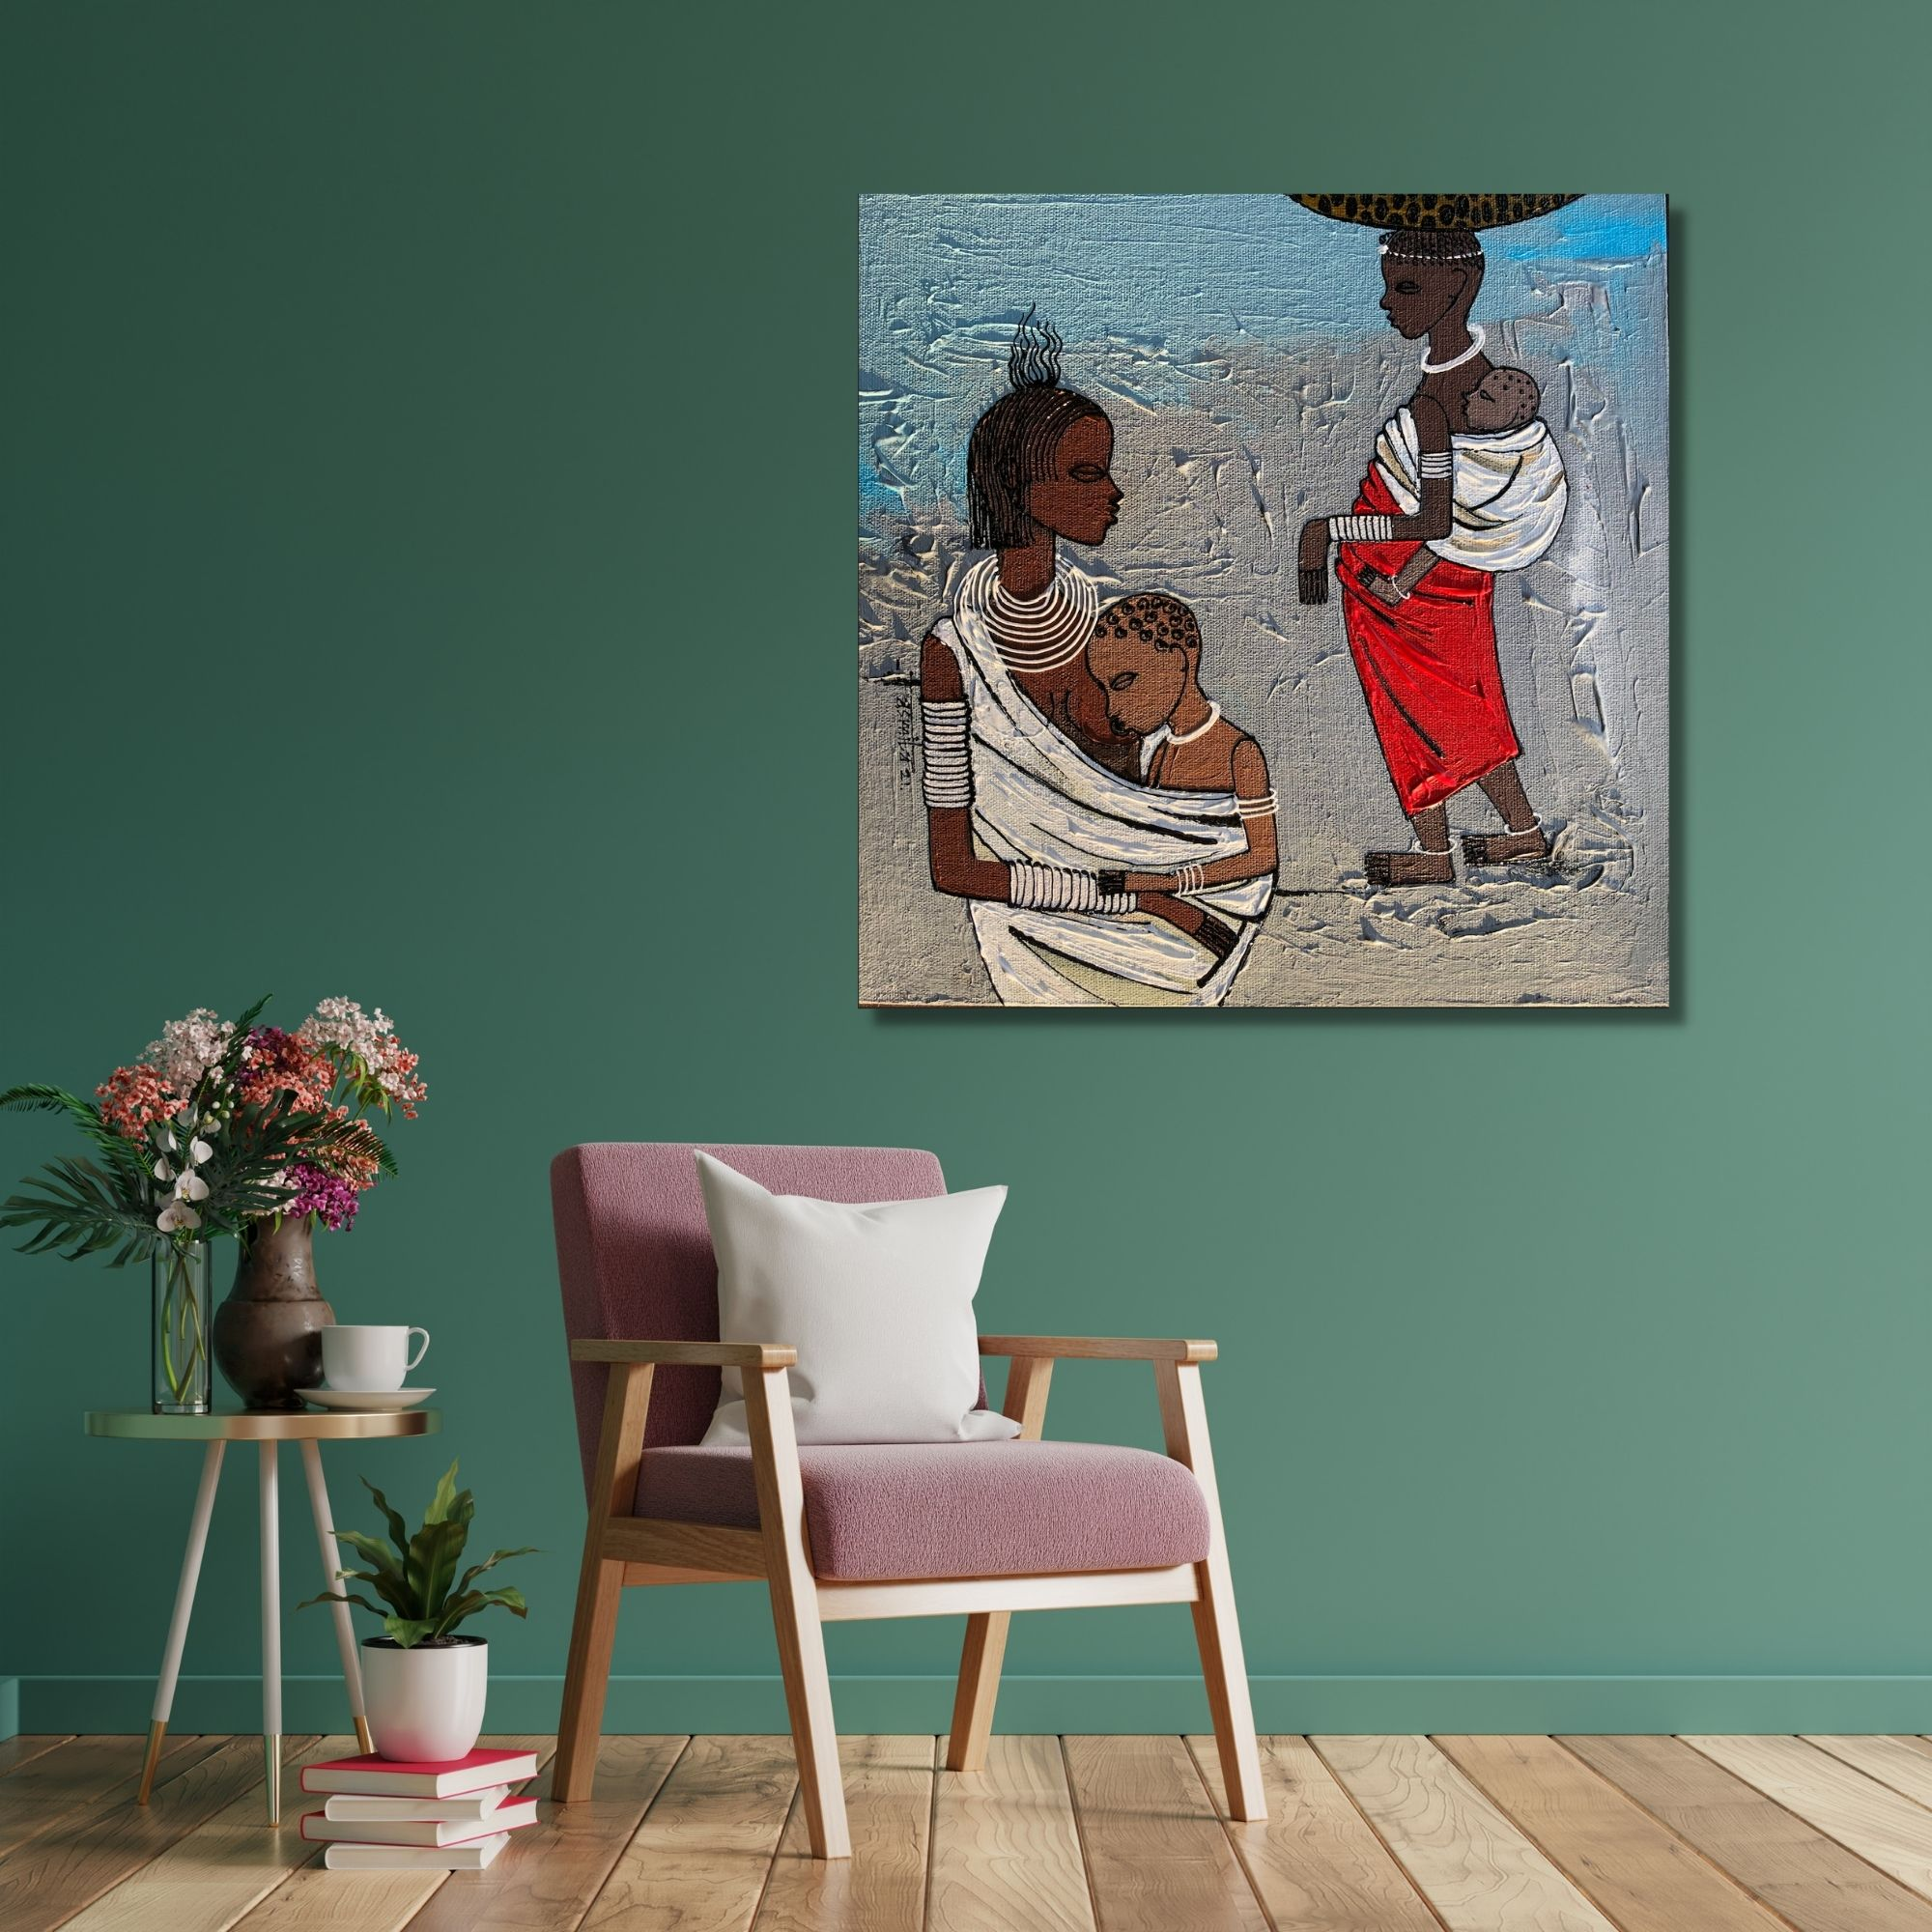 African Lifestyle 3_Acrylic on Canvas_12X12 (Inch)